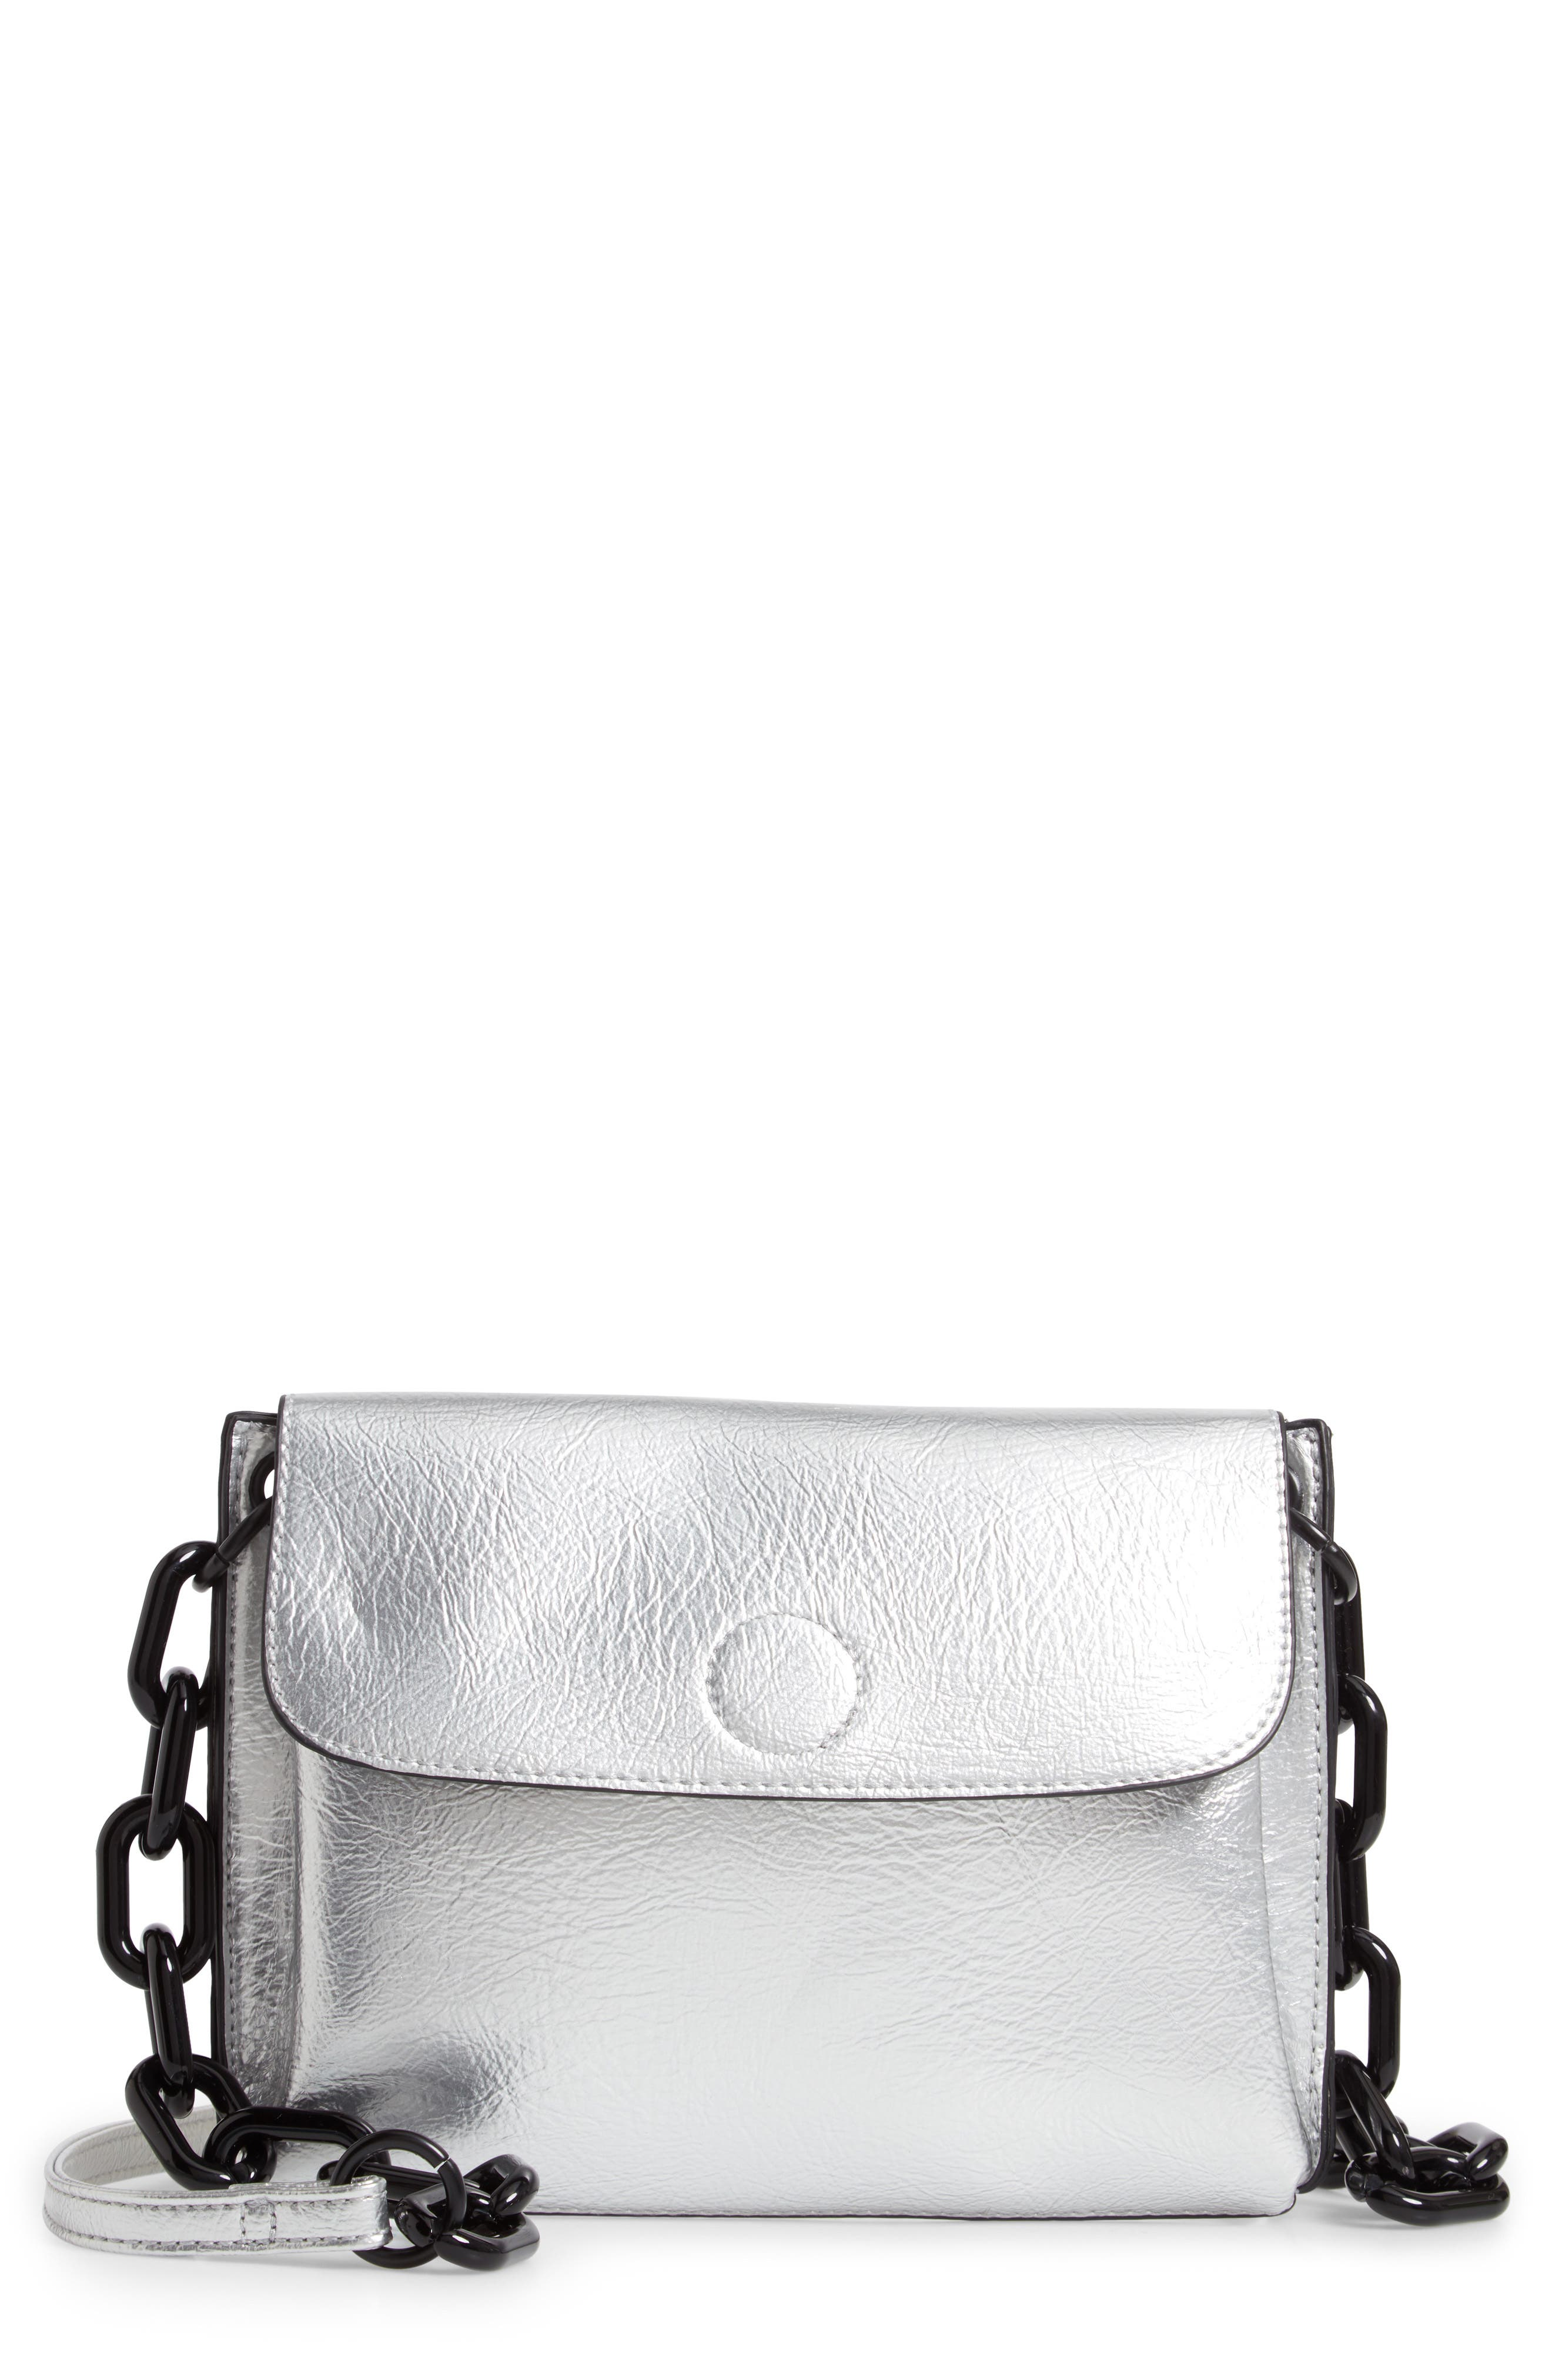 VIOLET RAY NEW YORK, Metallic Faux Leather Crossbody Bag, Main thumbnail 1, color, SILVER